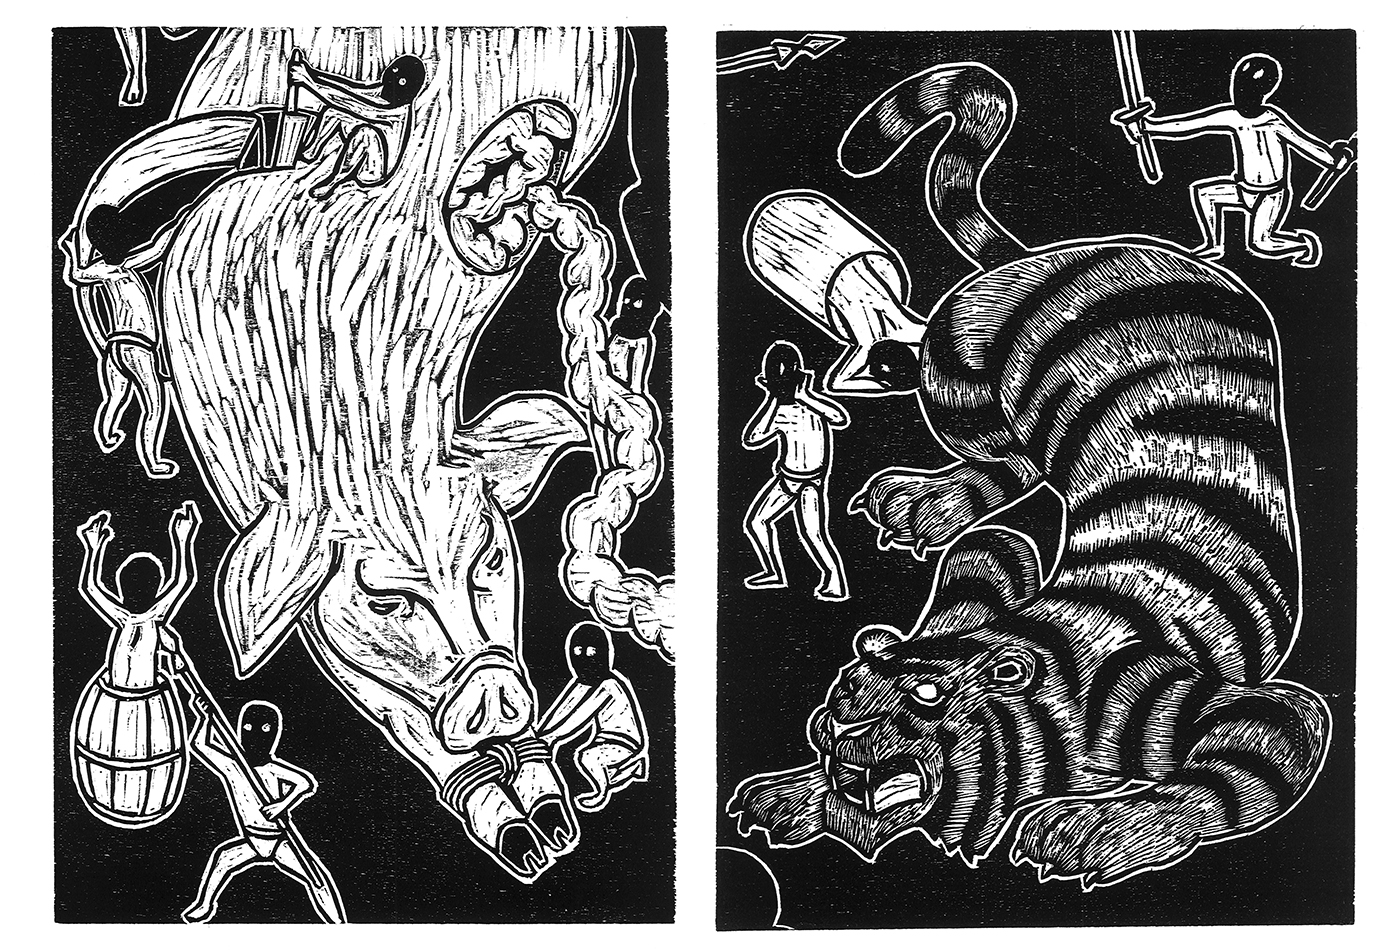 The Tiger and the Pig - Relief prints by Jan Curious